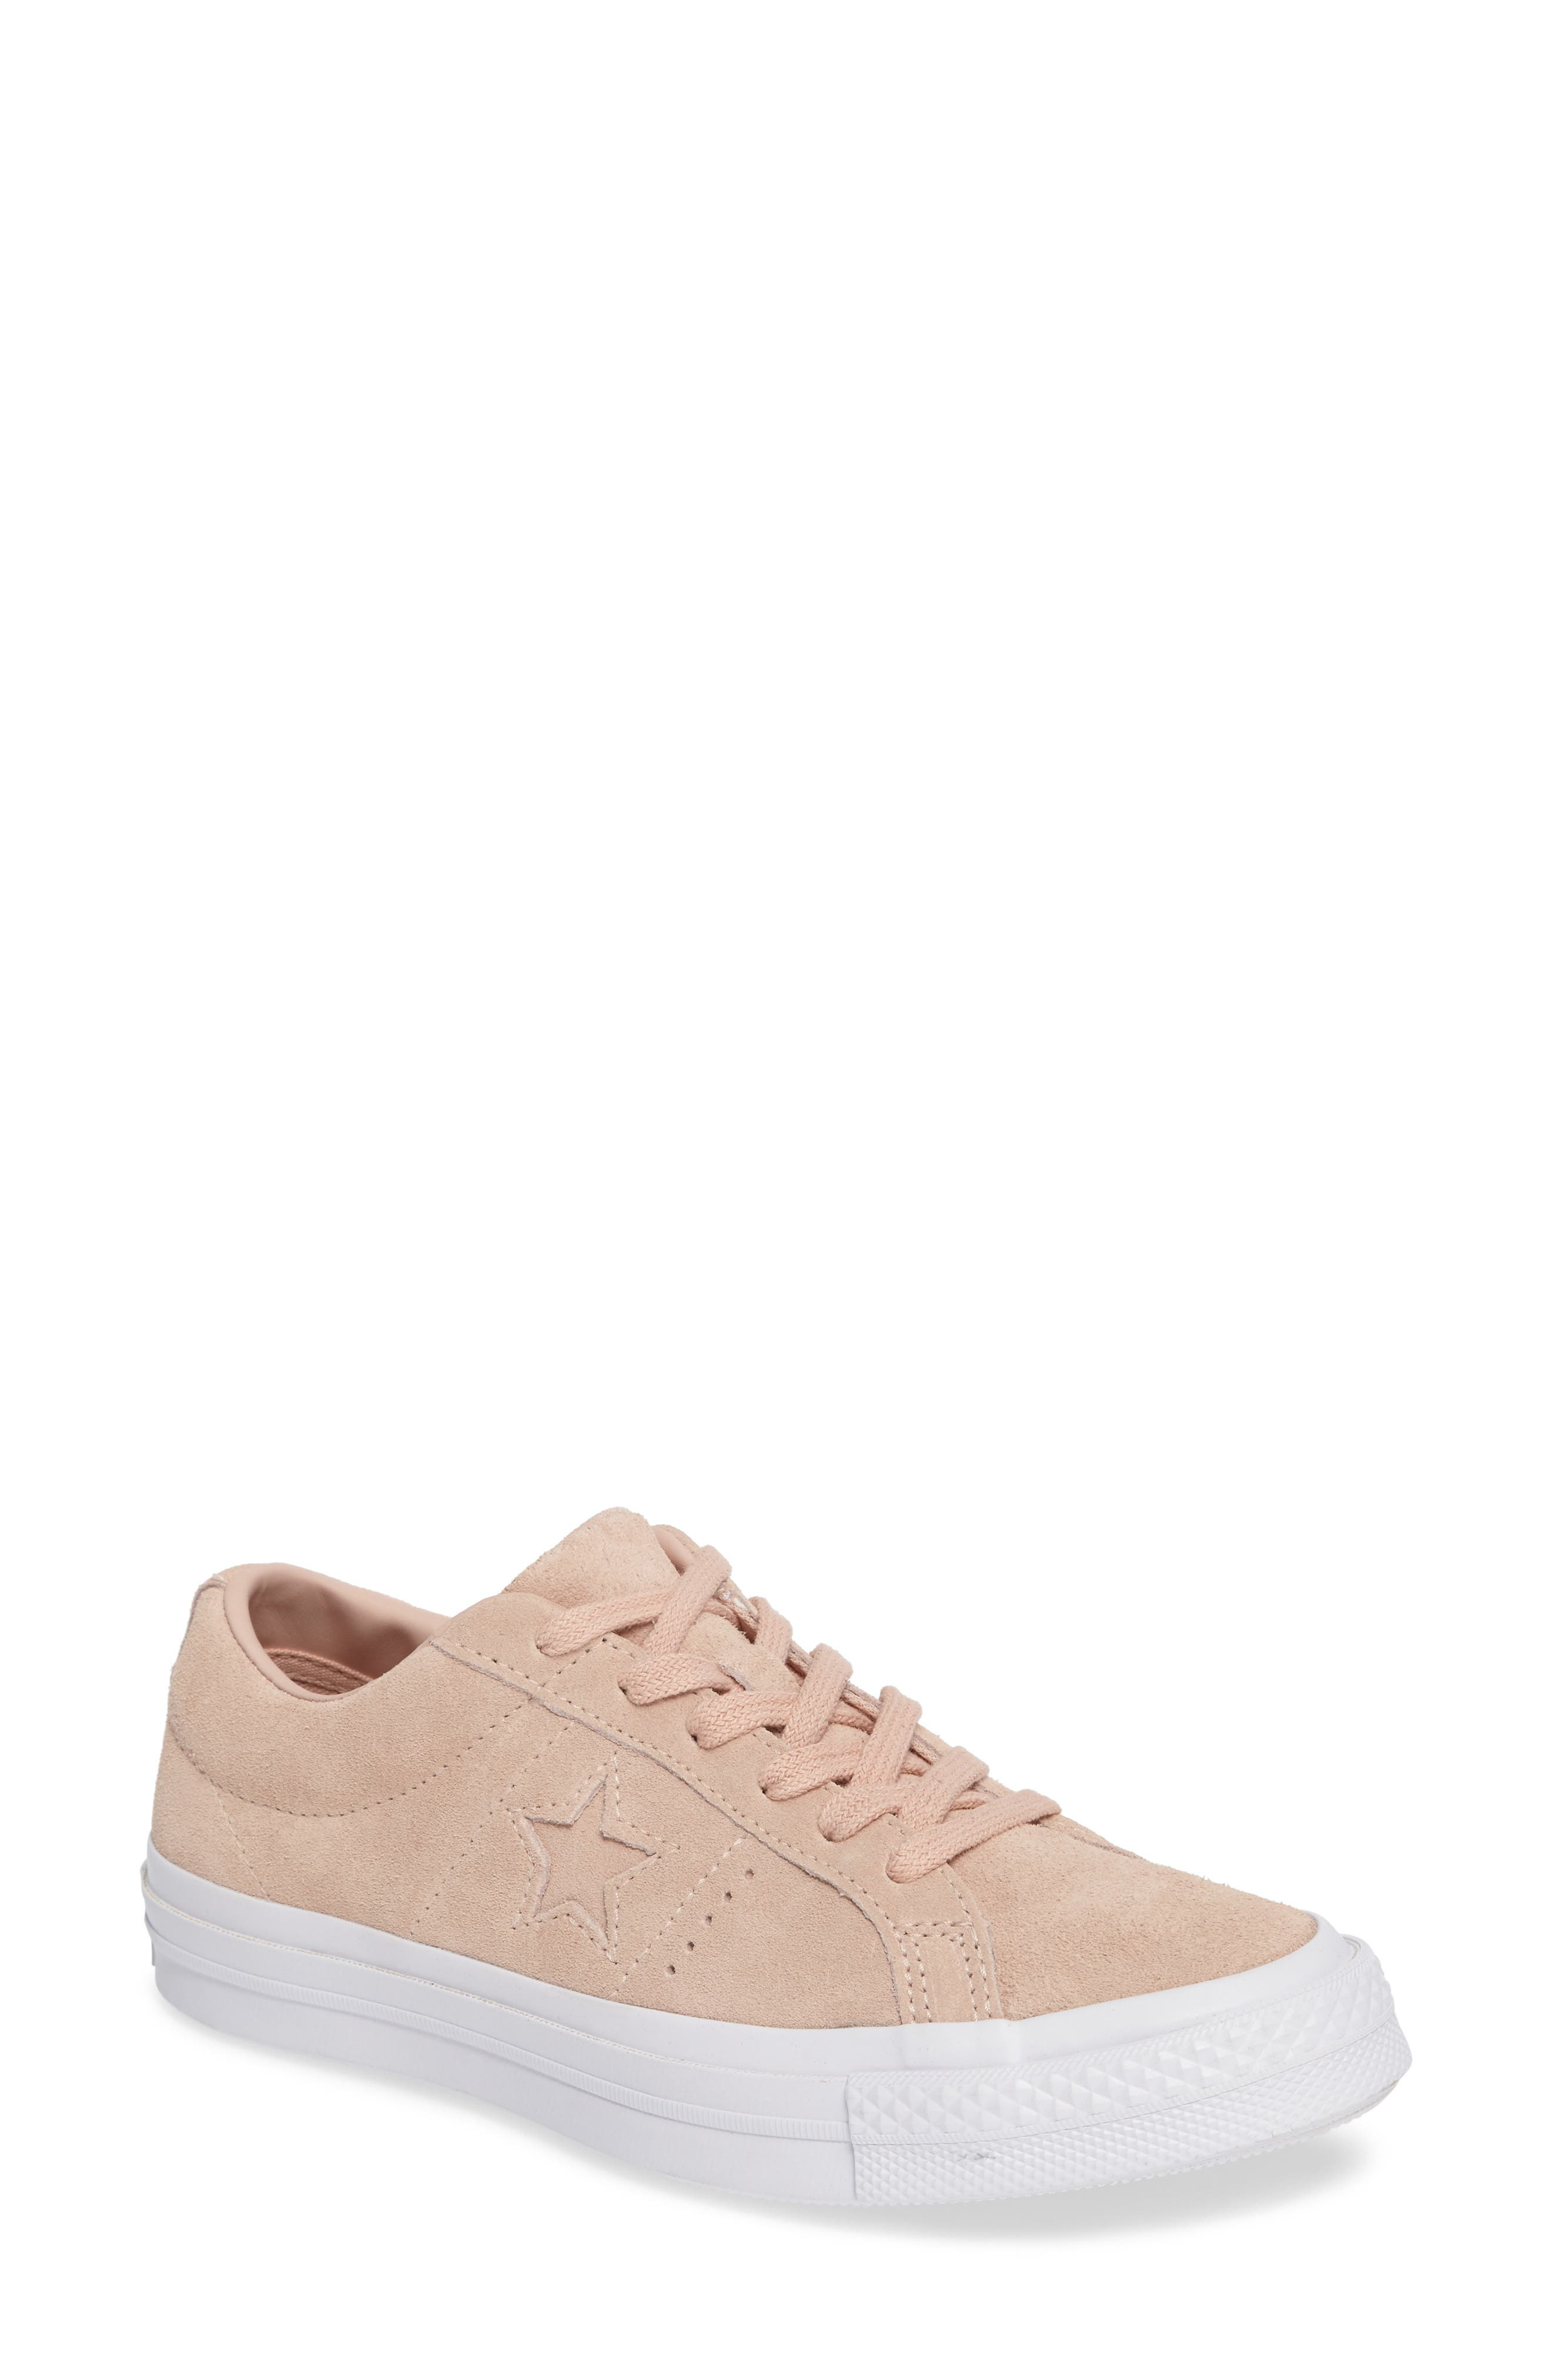 converse one star nordstrom